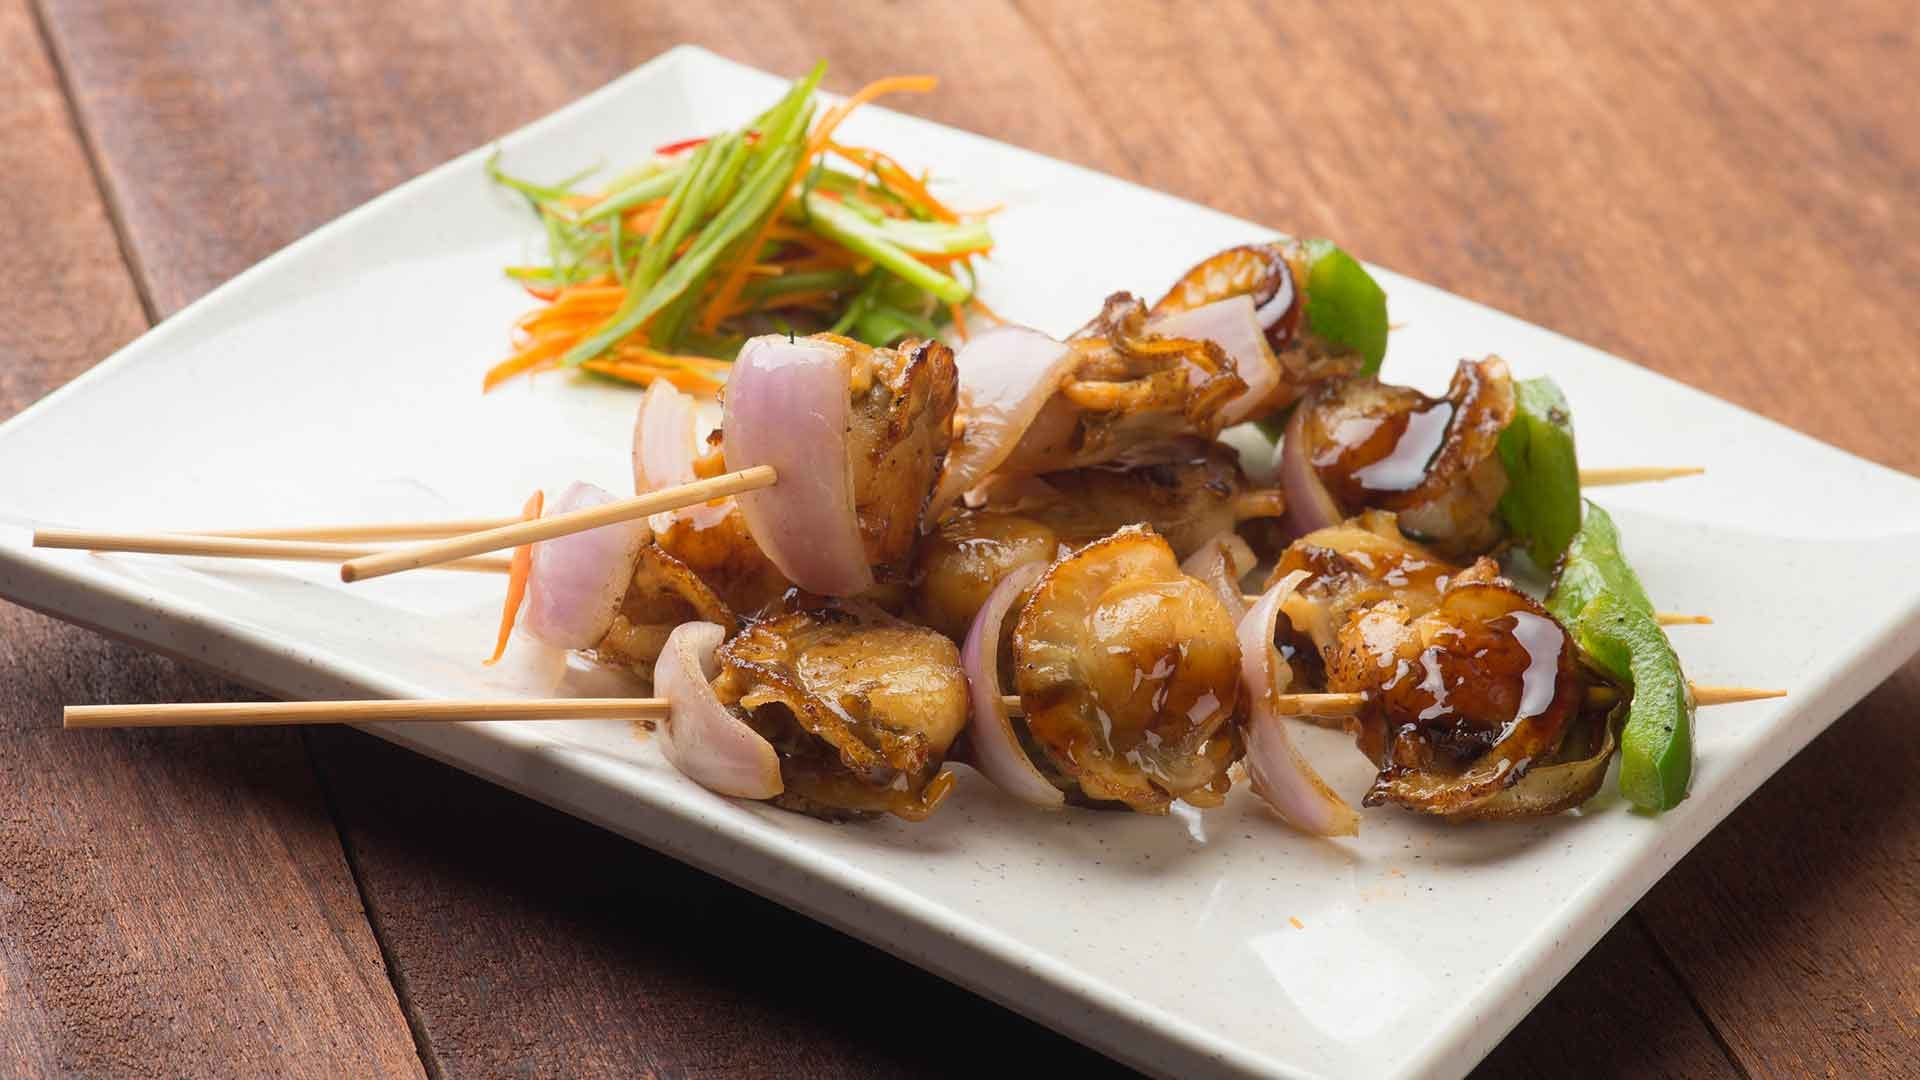 Grilled scallops skewered resting on a rectangle white plate.